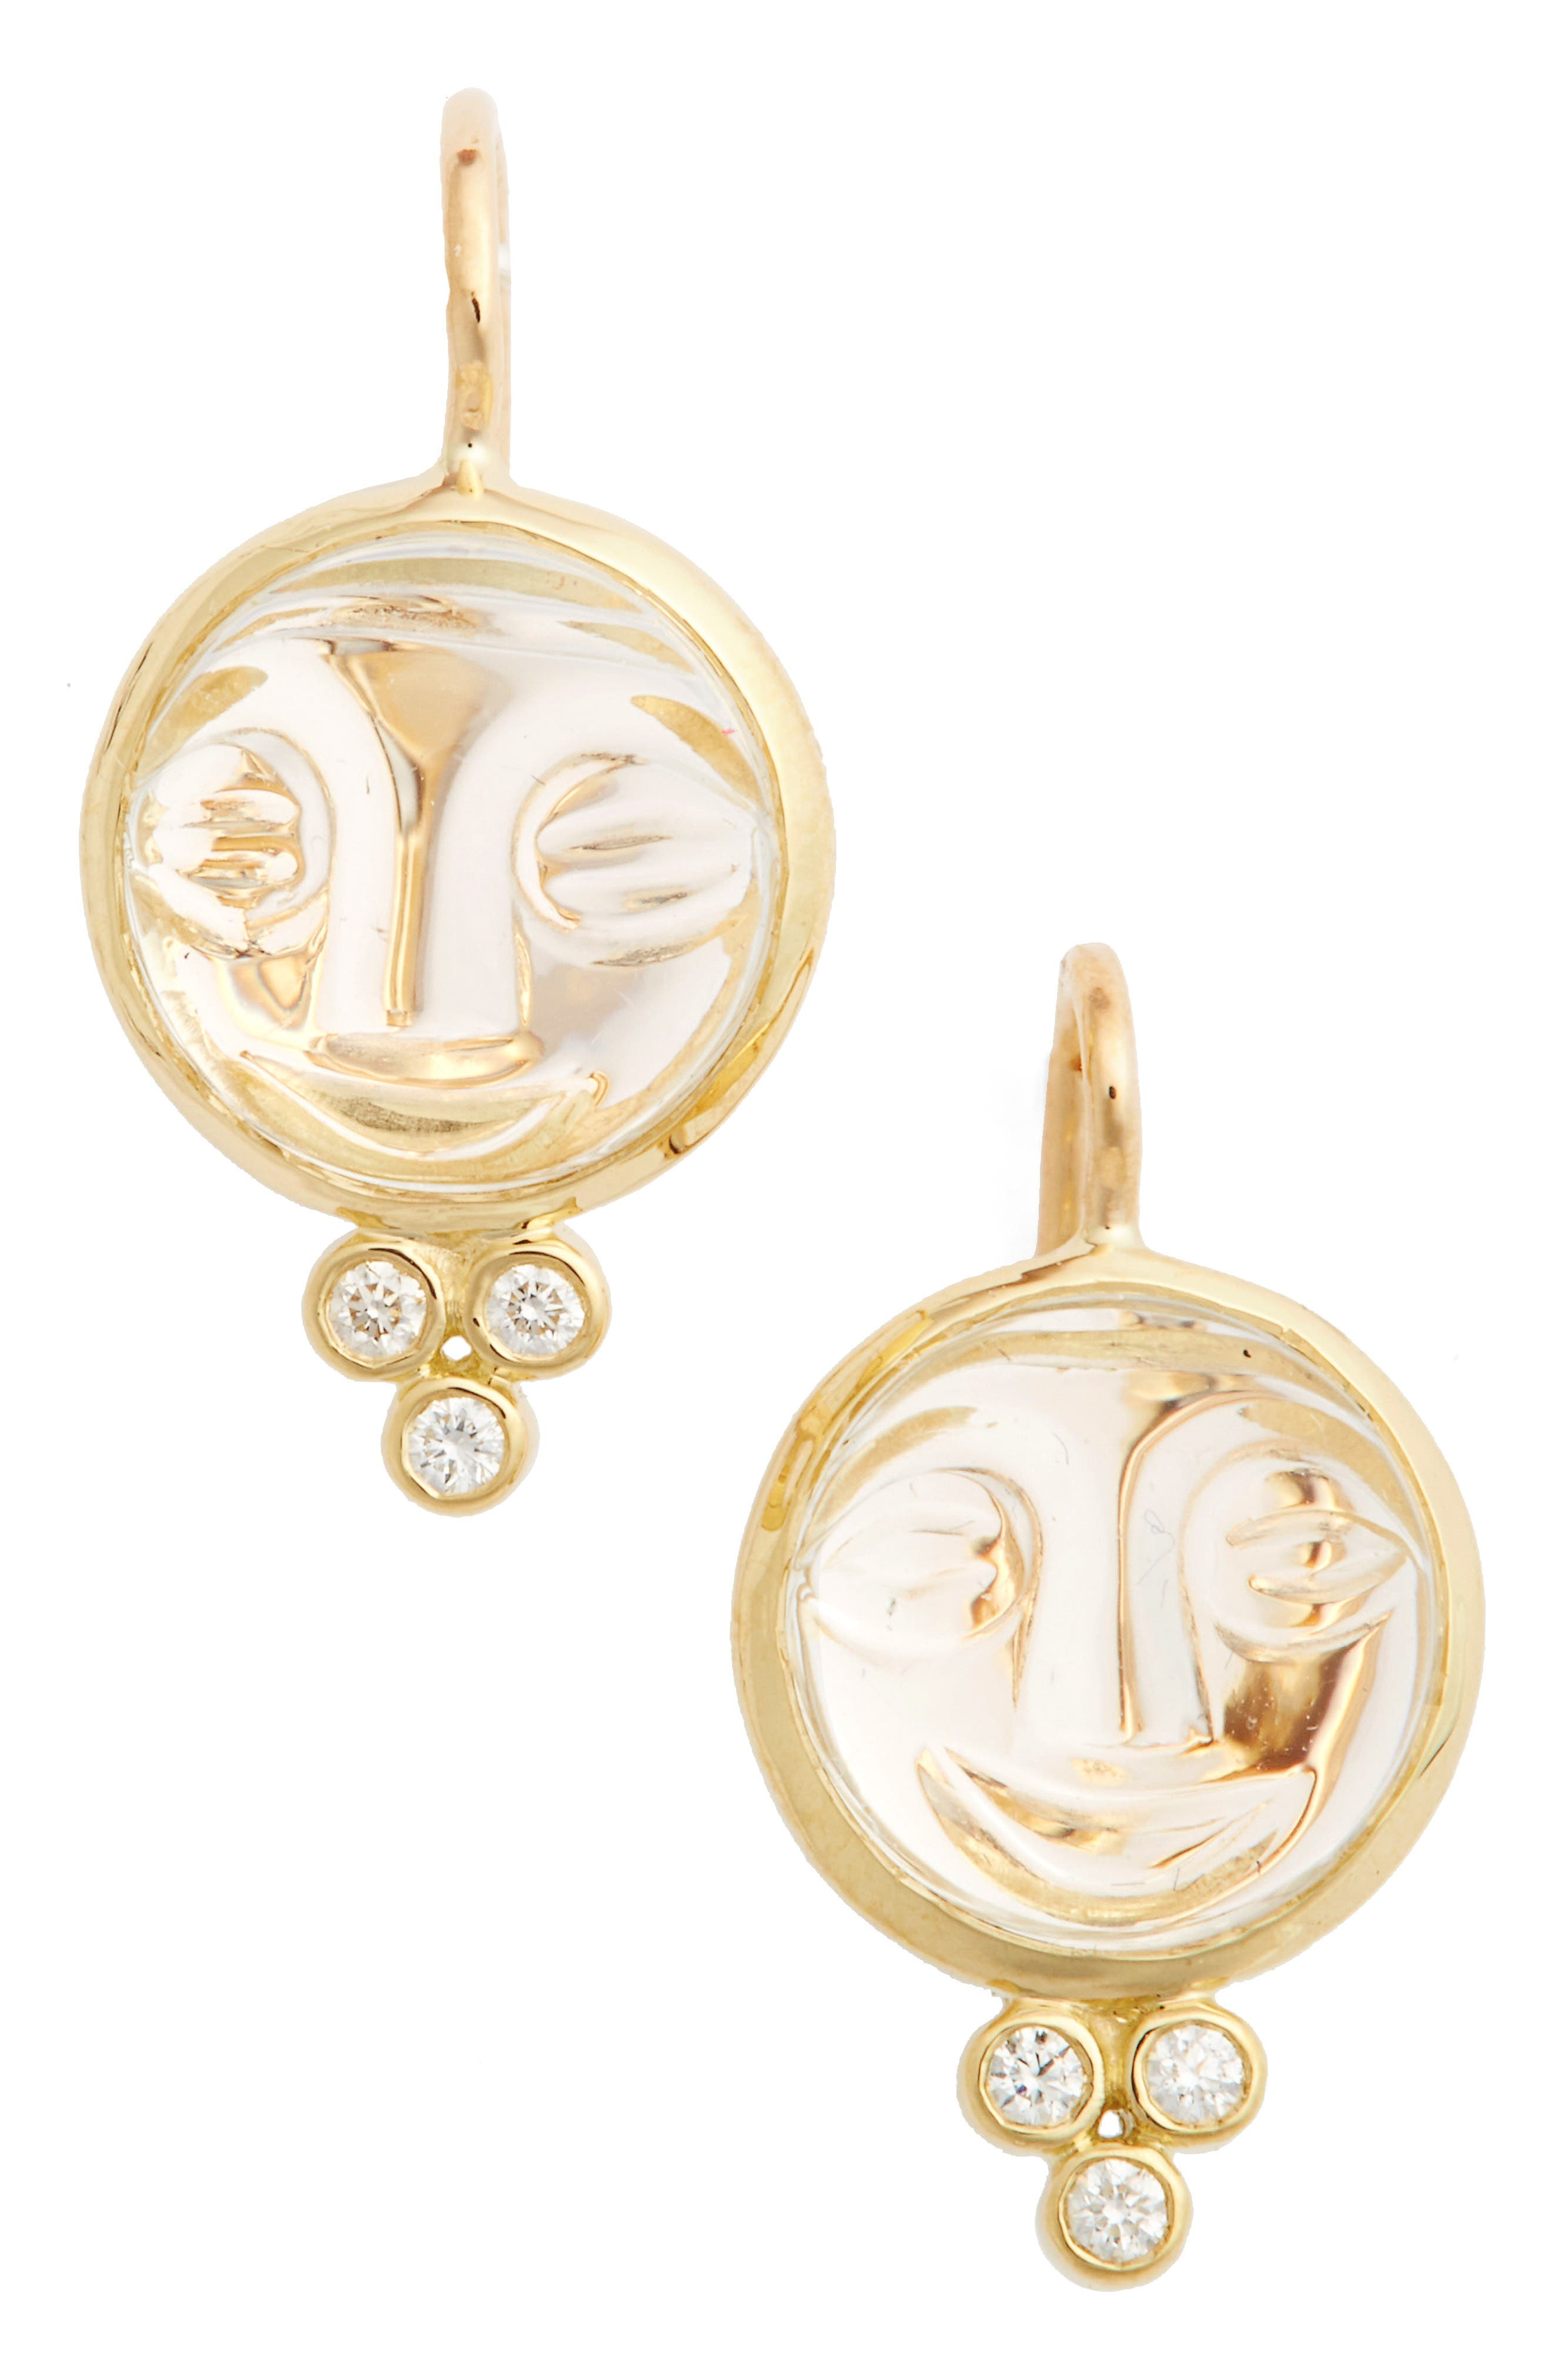 TEMPLE ST CLAIR Temple St. Clair Moonface Diamond & Rock Crystal Earrings, Main, color, YELLOW GOLD/ CRYSTAL